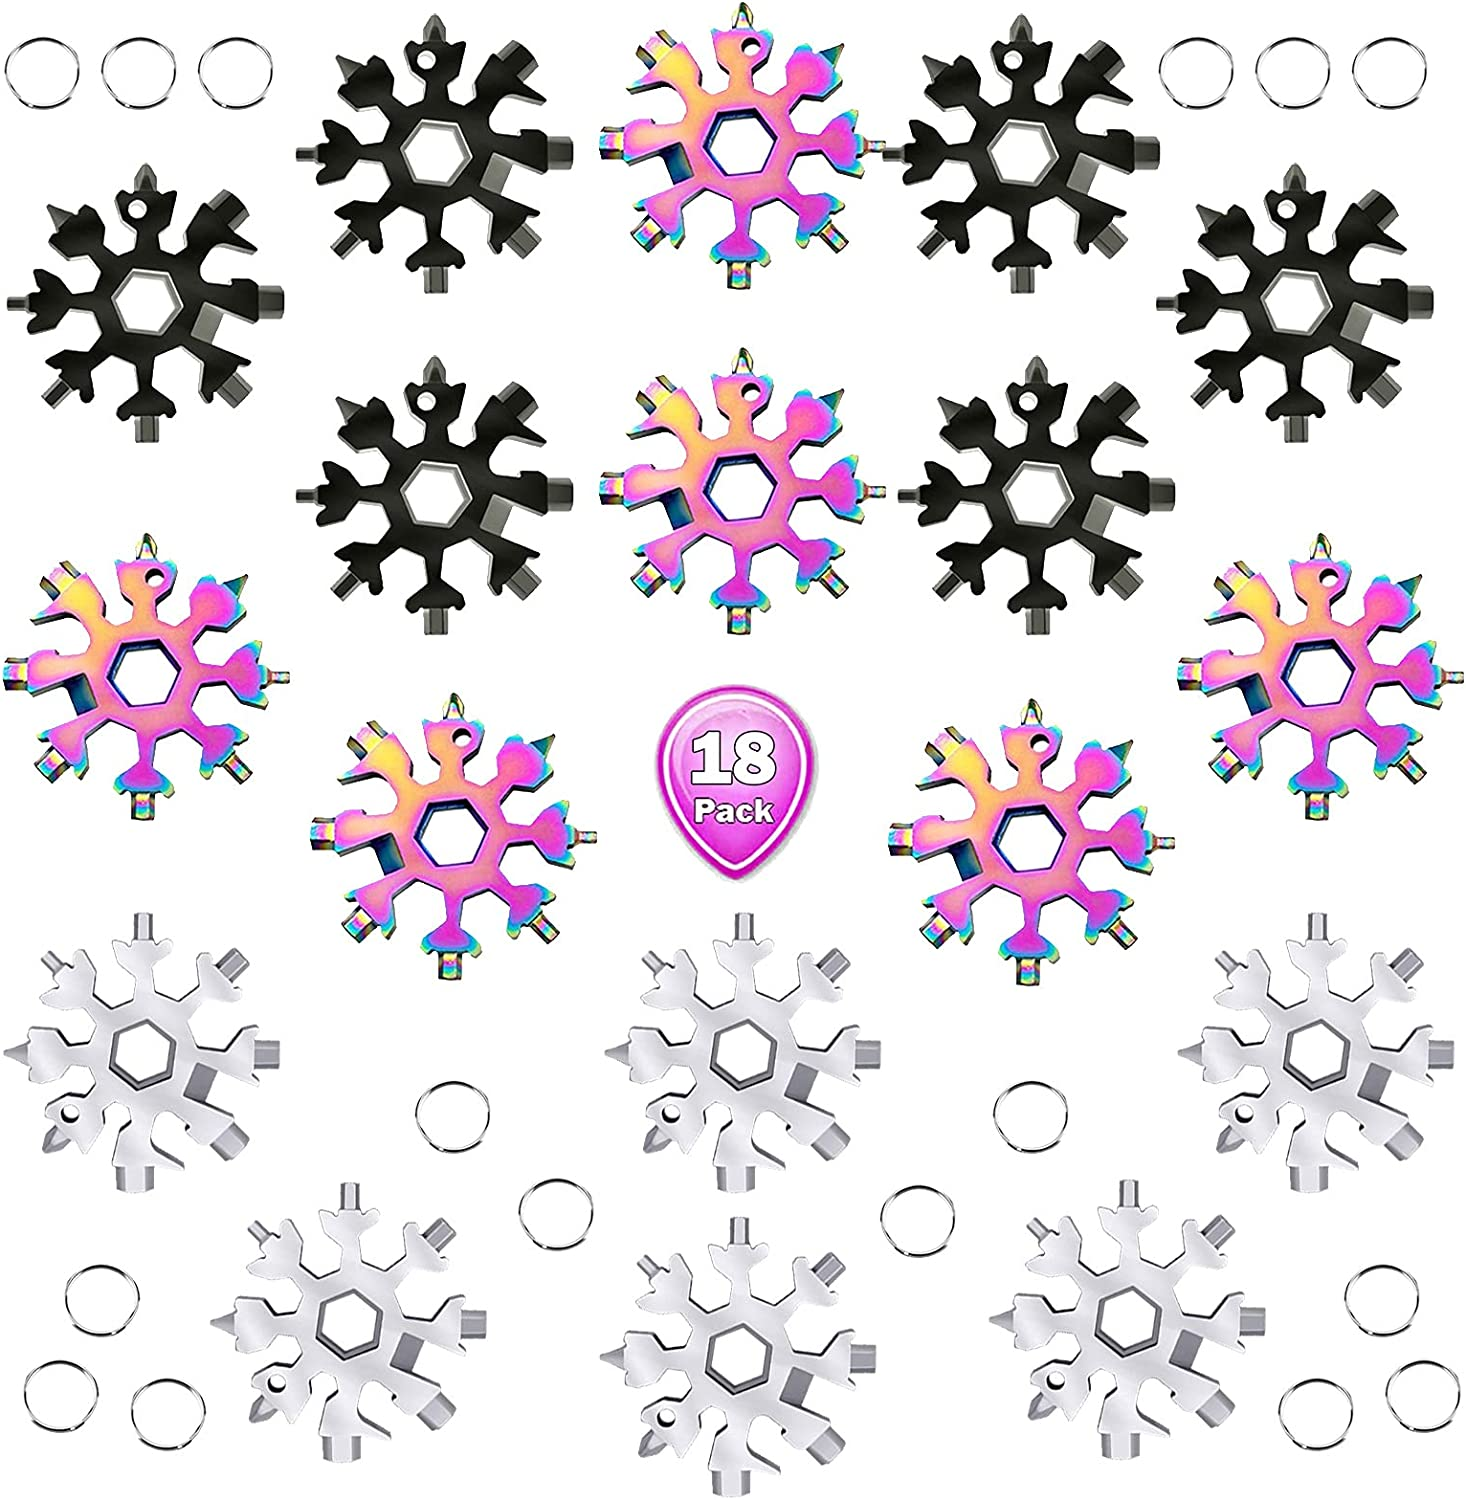 18-in-1 Snowflakes Multi Tool Steel Keychain Stainless New arrival Max 65% OFF Multitoo